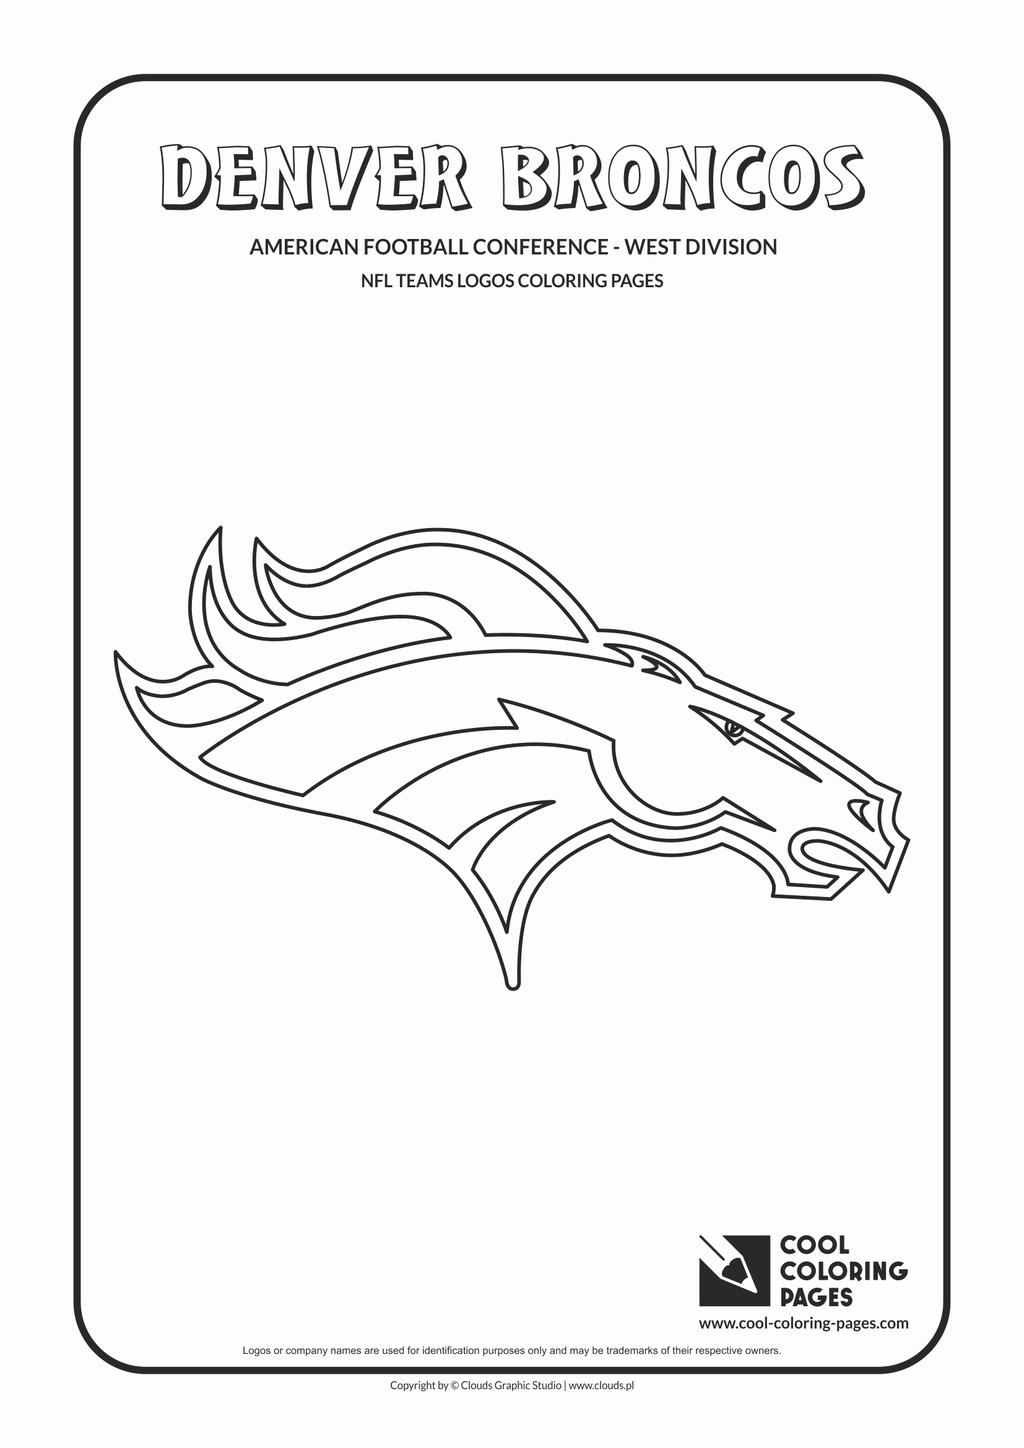 Denver Broncos Mascot Coloring Pages Lovely Football